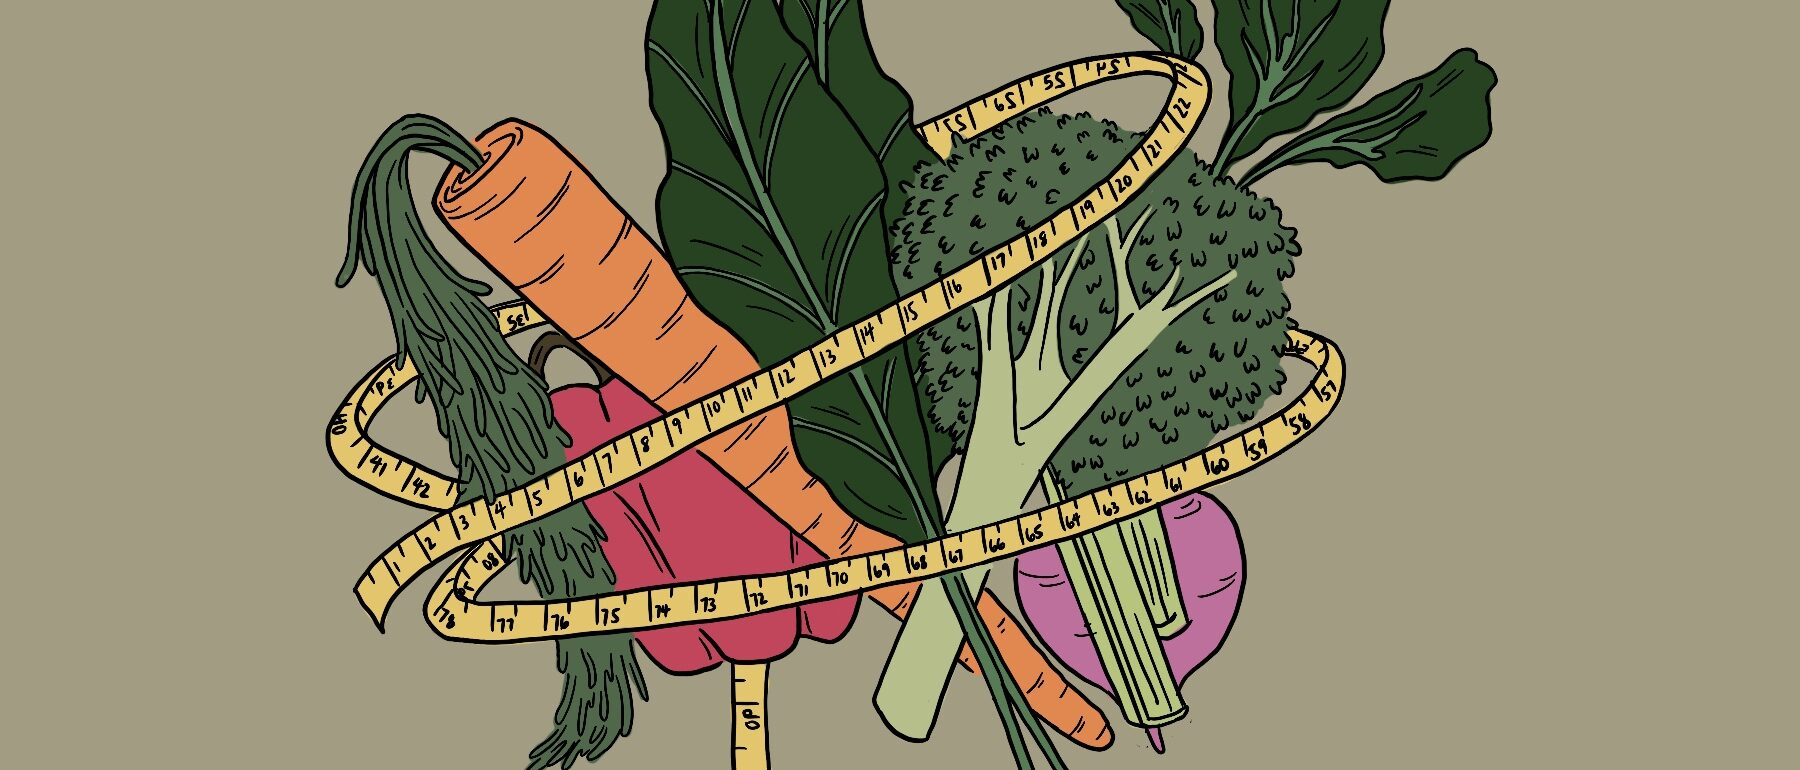 Orthorexia, an image of vegetables wrapped in a measuring tape